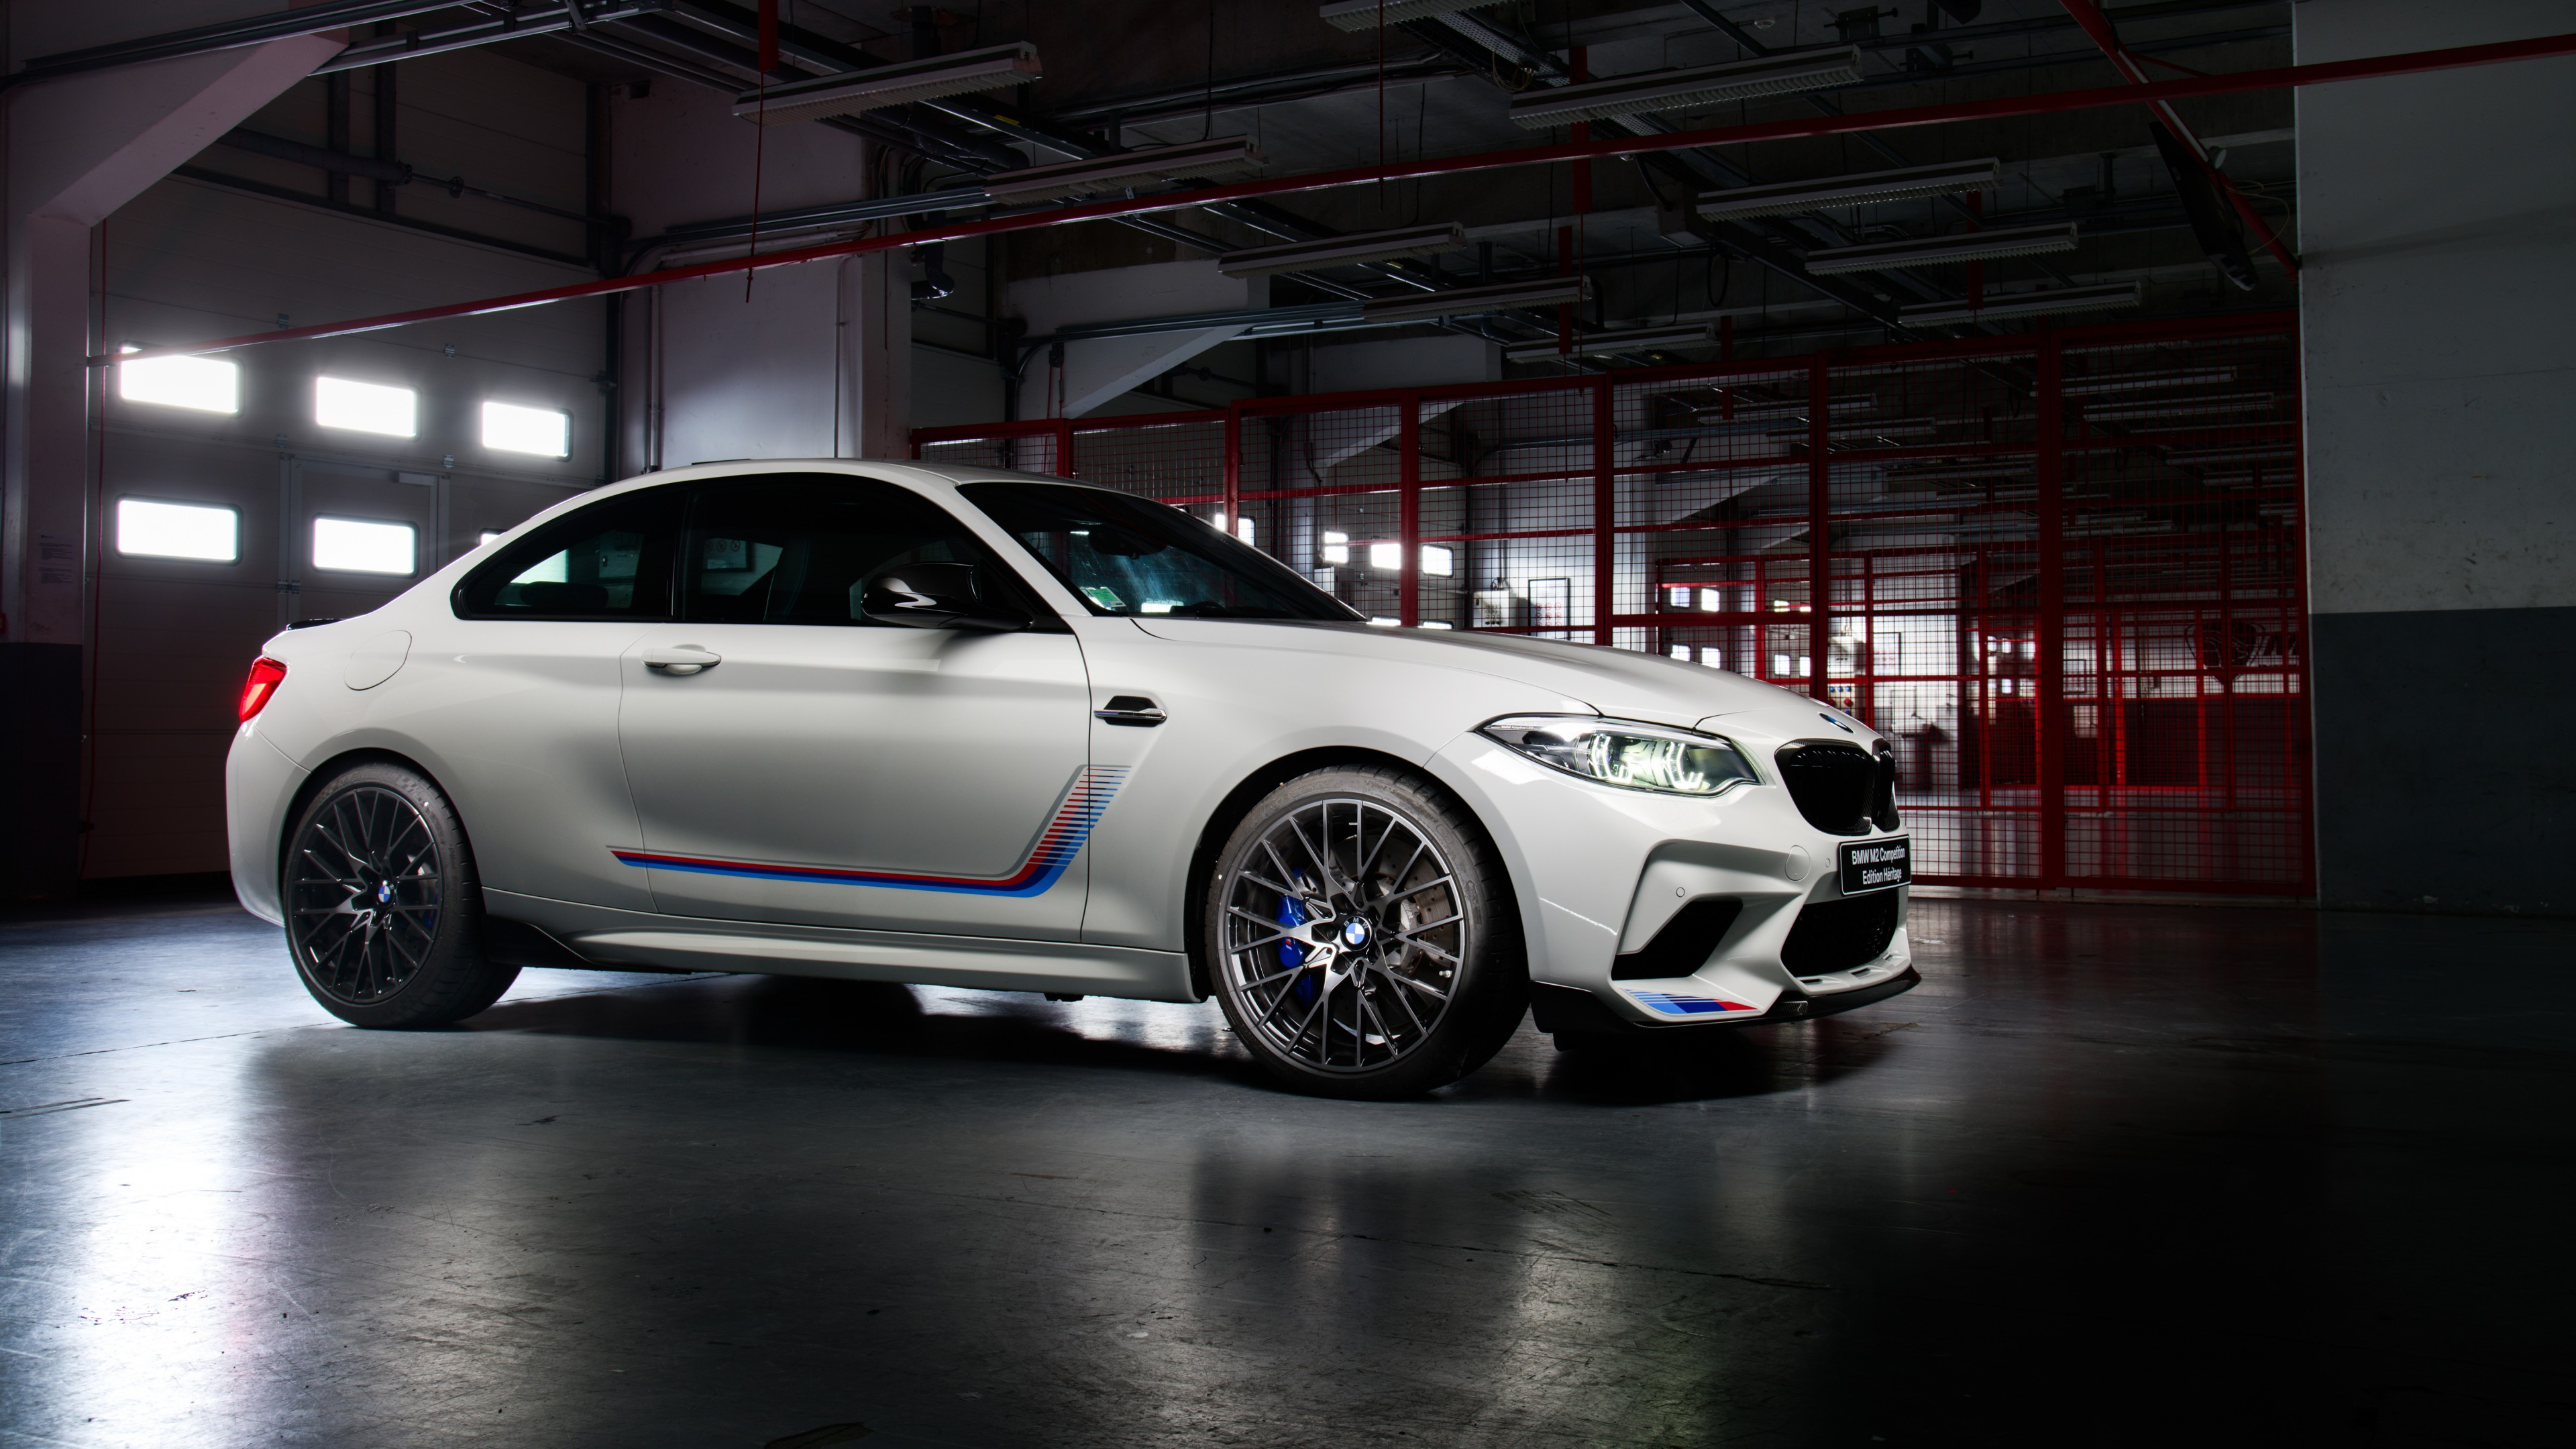 bmw_m2_compeion_edition_heritage_2019_5k-3840x2160 Home Design Image Hd on home design game, home design ad, home design toys, home design app, home design kitchen, home design thai, home design bd, home design features, home design cartoon, home design tv, home design japanese,